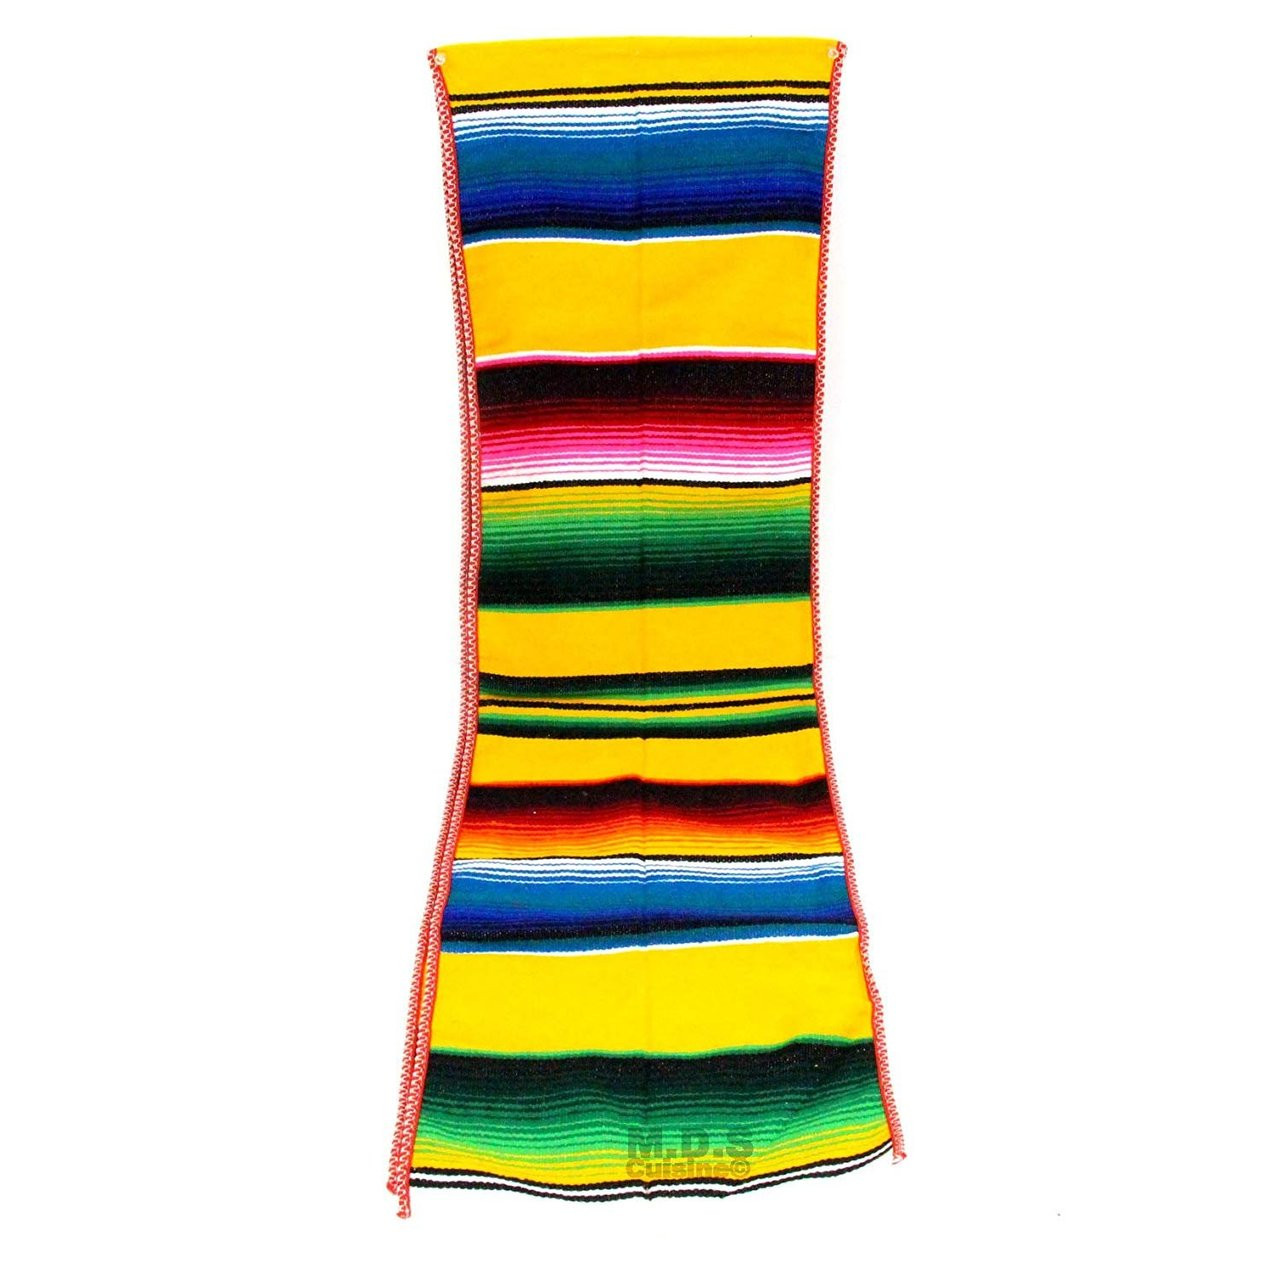 Astonishing Ematik Serape Traditional Vibrant Colorful 100 Mexican Table Runner Zarape Throw Blanket Table Linen From Saltillo Coahuila Fiesta Bumble Bee Download Free Architecture Designs Intelgarnamadebymaigaardcom